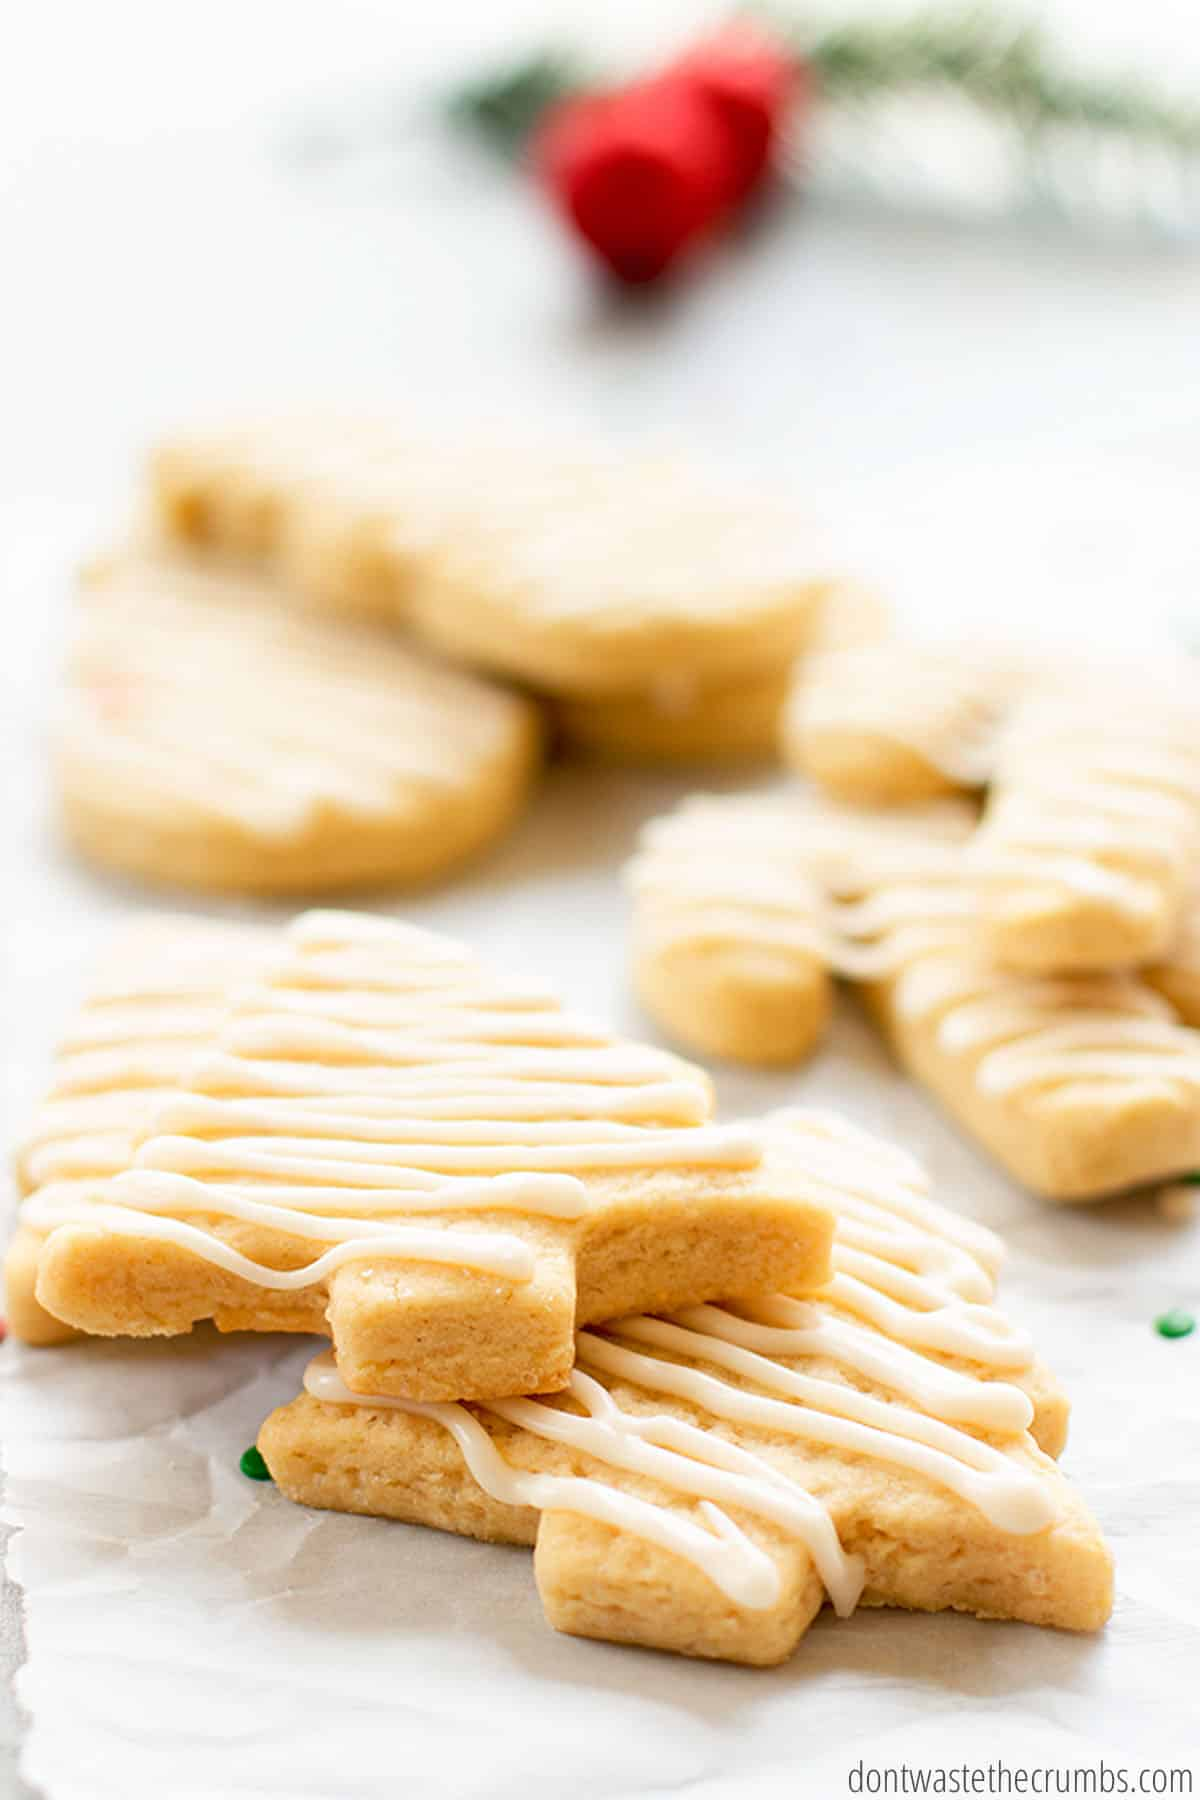 The zigzag iced sugar cookies, in the shape of Christmas trees, are stacked on top of each other. You can see how thick and chewy the cookies are from the side.